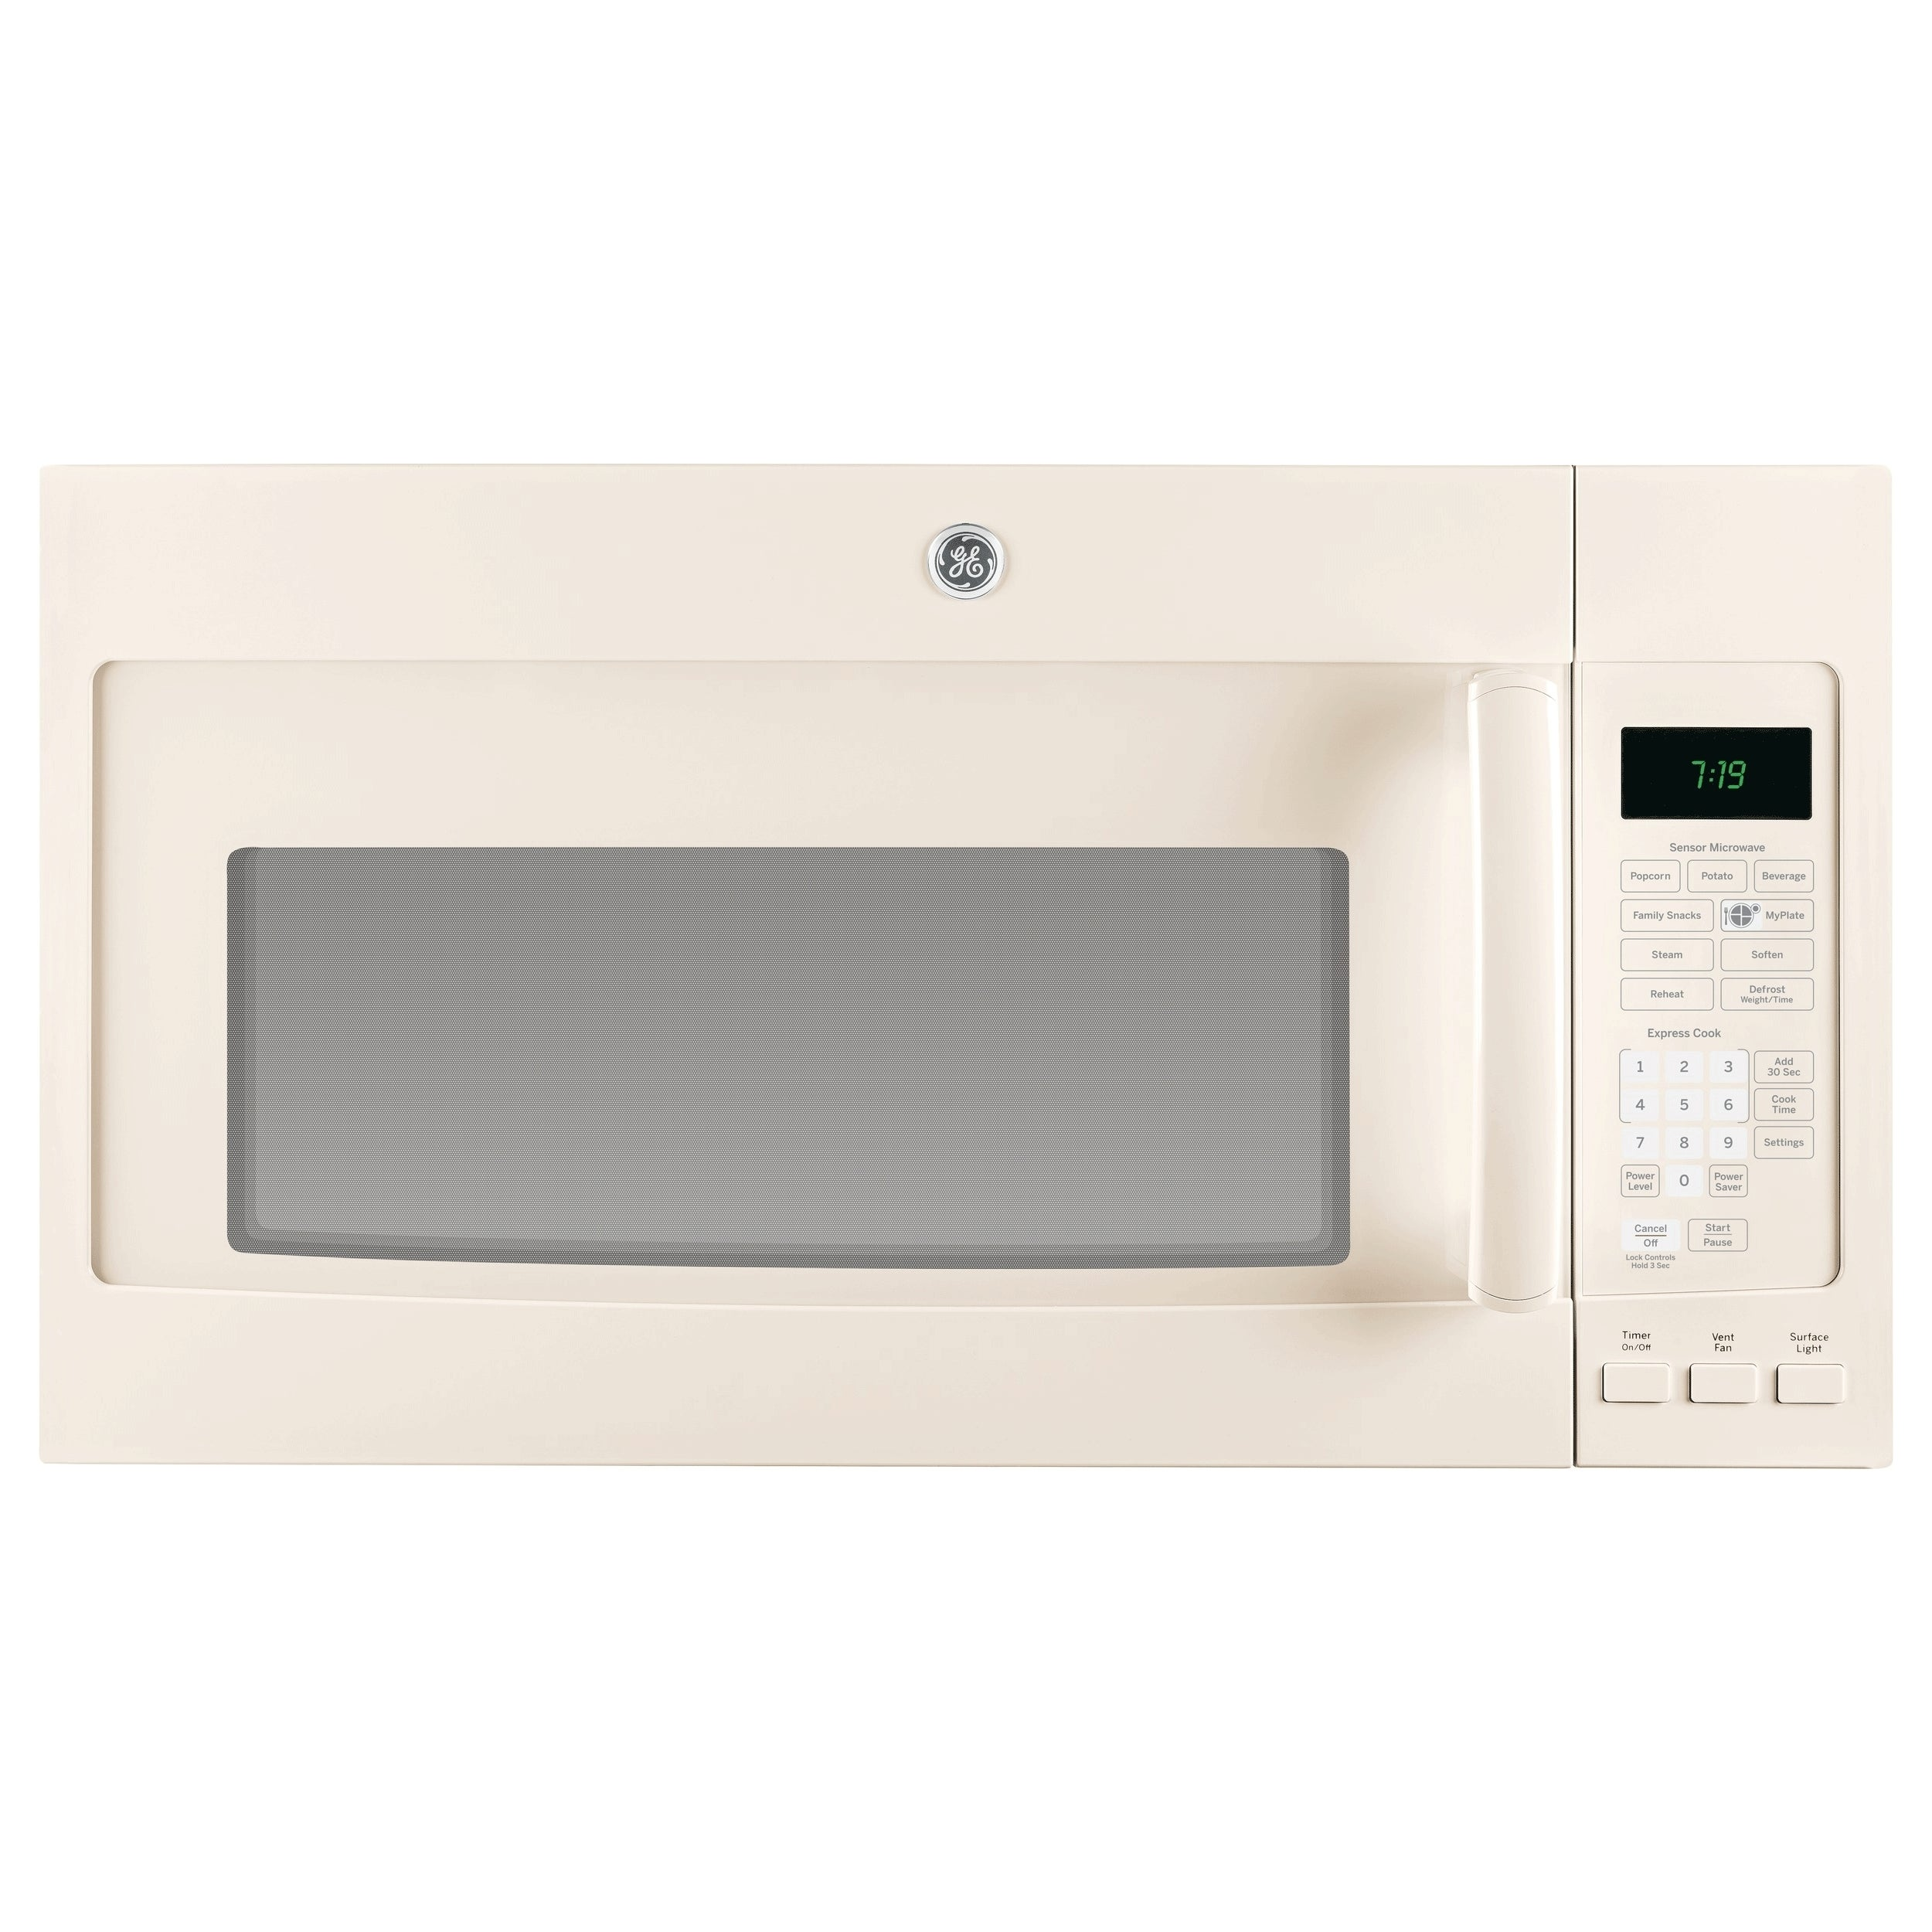 Bisque Colored Countertop Microwave Ovens Bestmicrowave